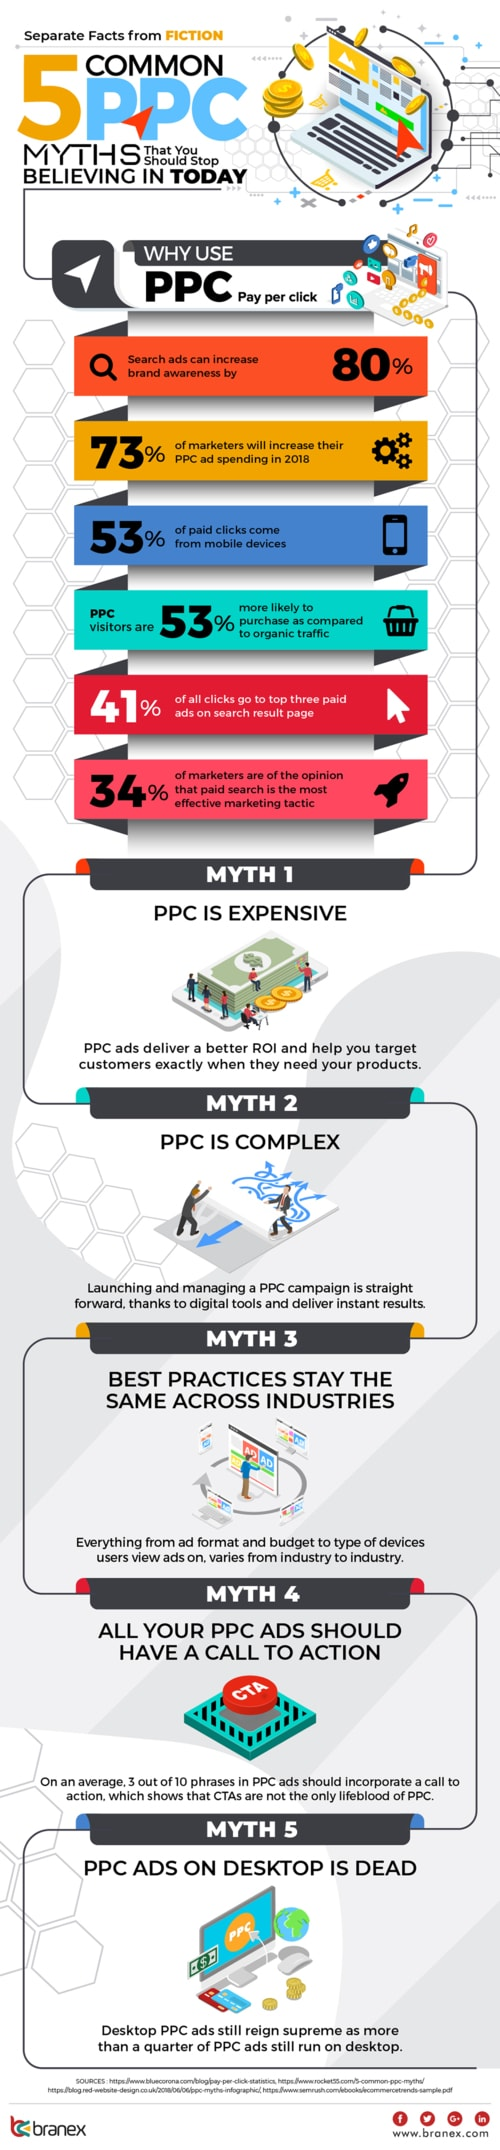 5 Common PPC Myths That You Should Stop Believing In Today via John Rex